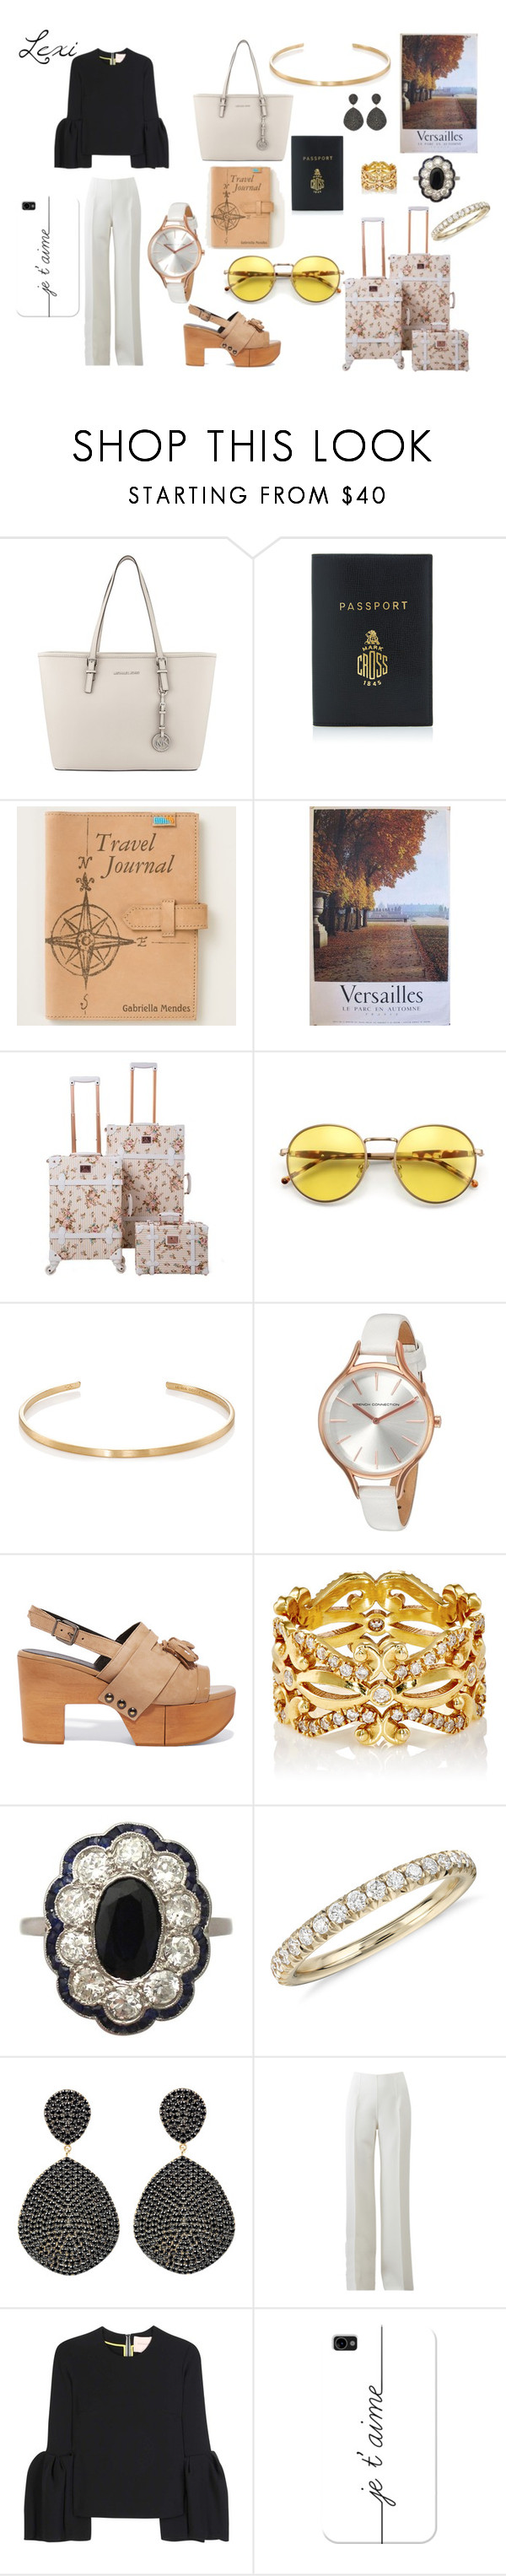 """""""VERSAILLES OUTFIT"""" by lexiperez599 ❤ liked on Polyvore featuring MICHAEL Michael Kors, Mark Cross, Wildfox, Le Gramme, French Connection, Robert Clergerie, Sara Weinstock, Blue Nile, Latelita and Michael Kors"""